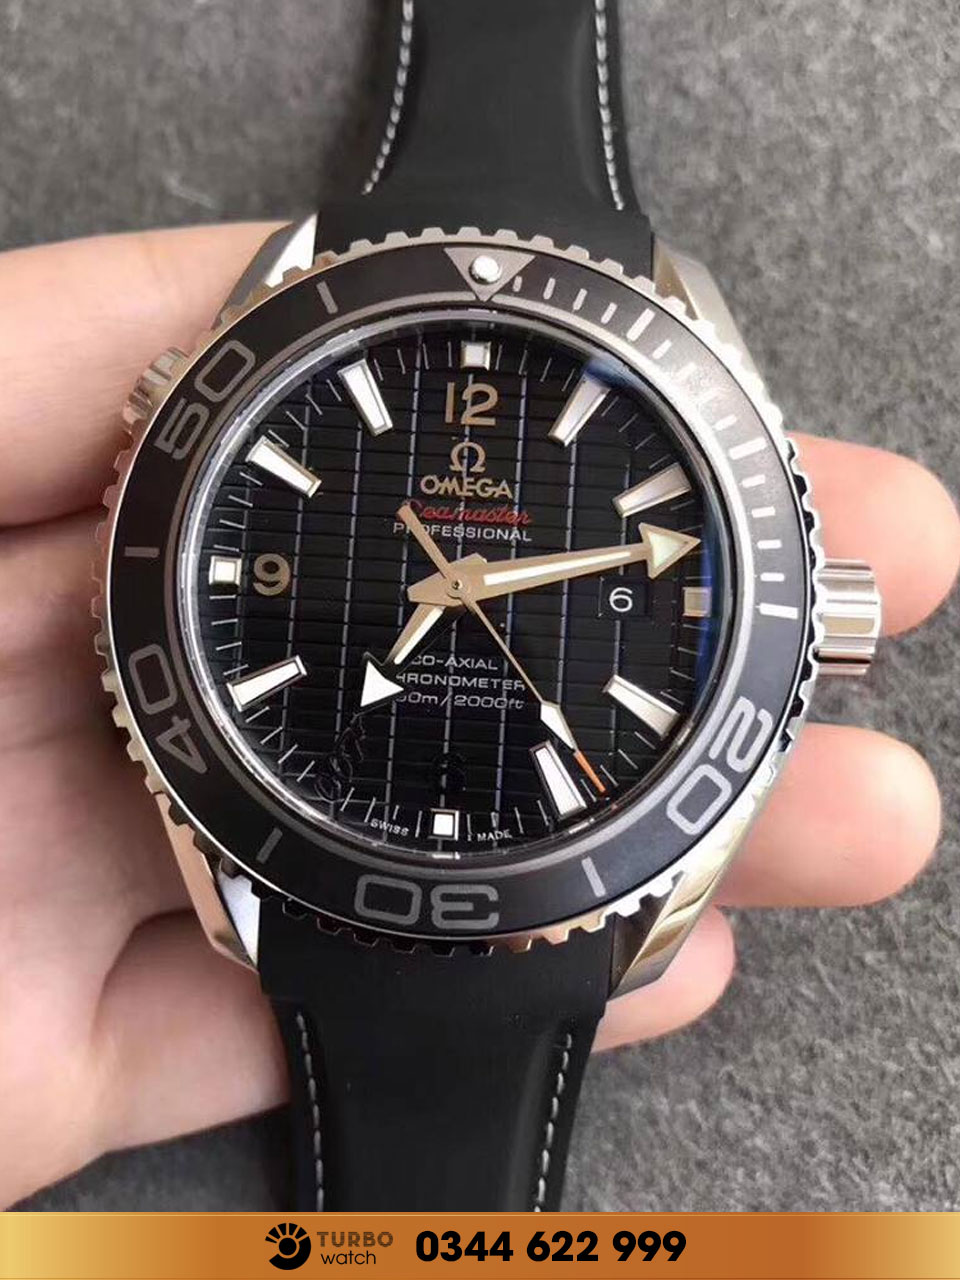 Omega Seamaster Professional Co Axial Chronometer replica 1:1 cao cấp